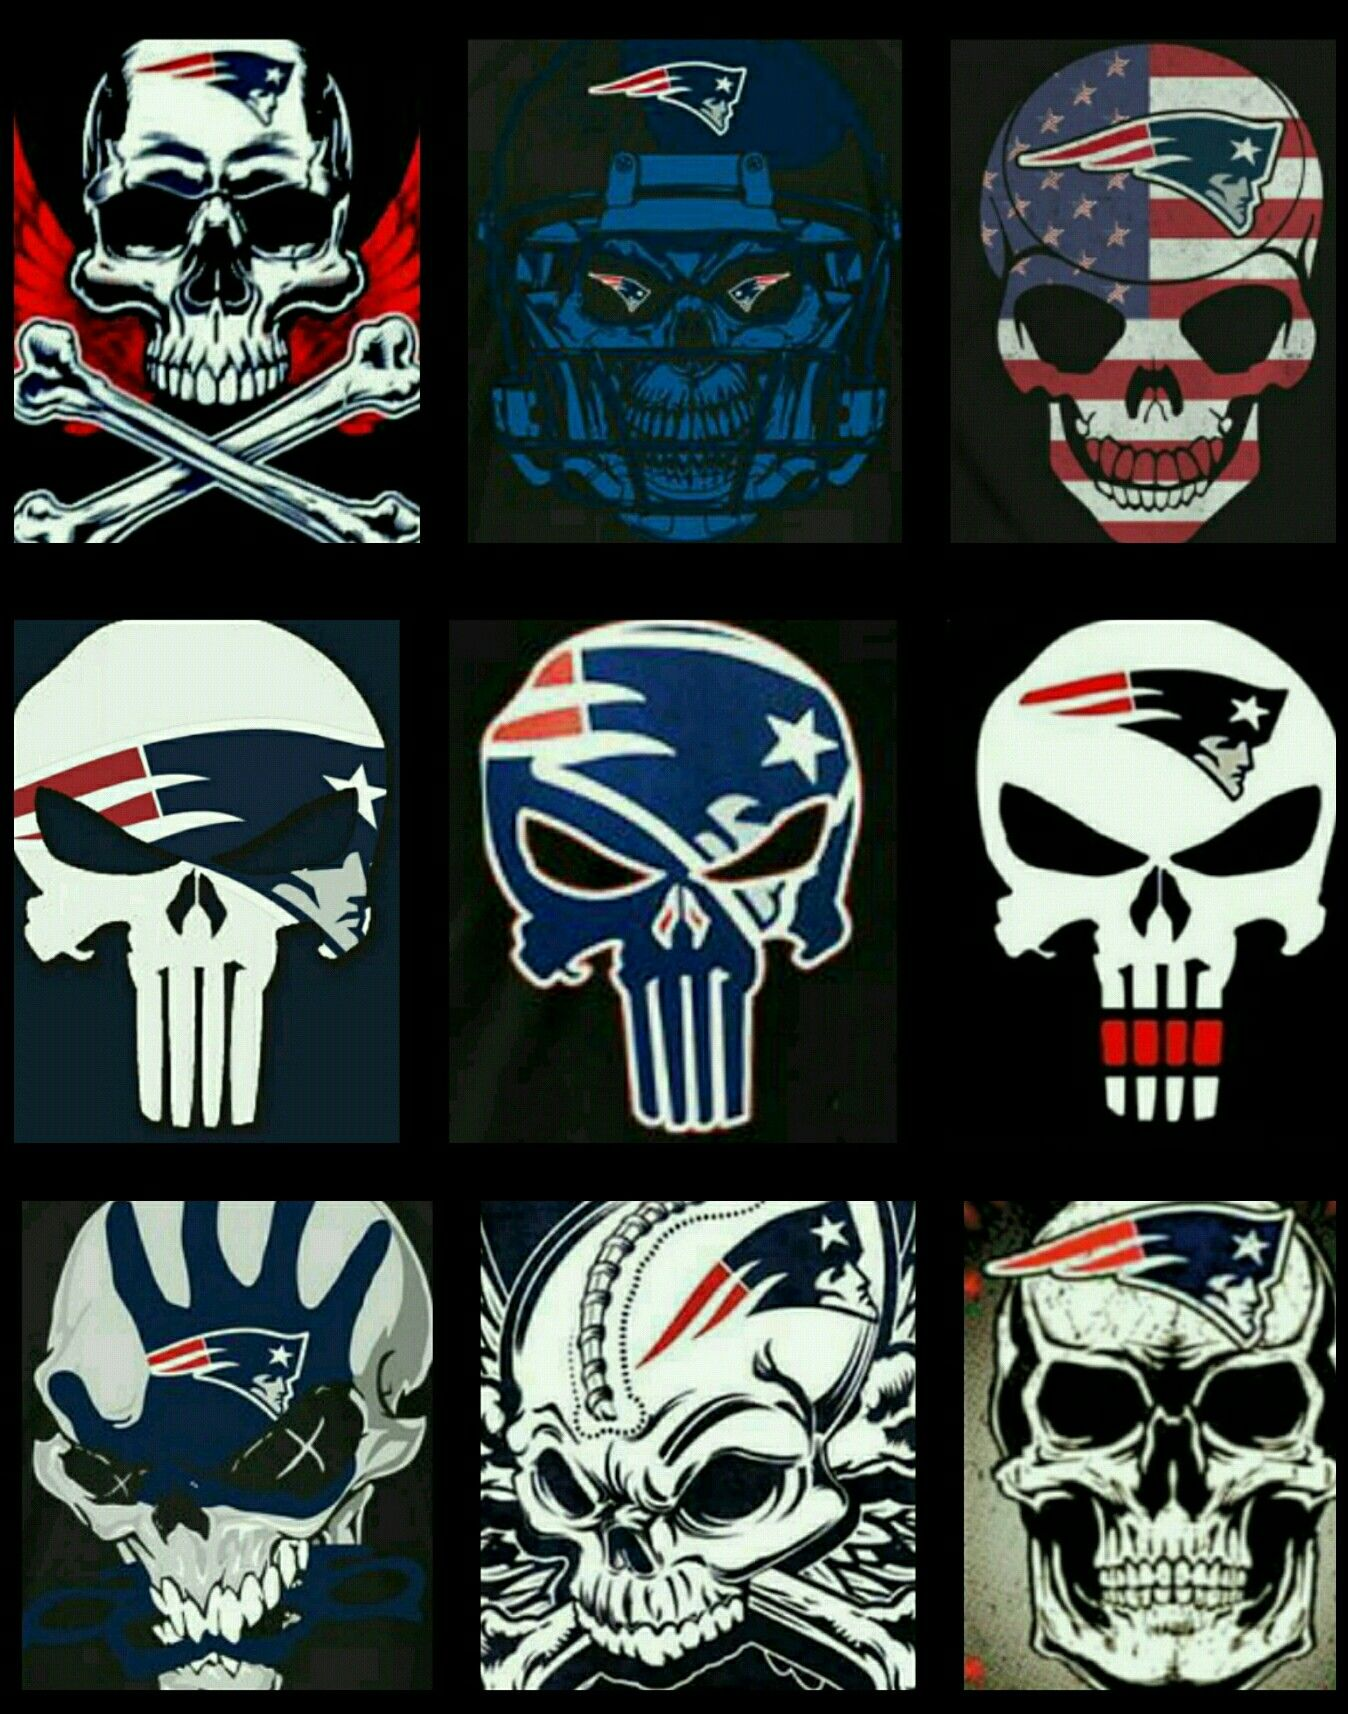 Patriots Skulls New England Patriots Football New England Patriots Patriots Football